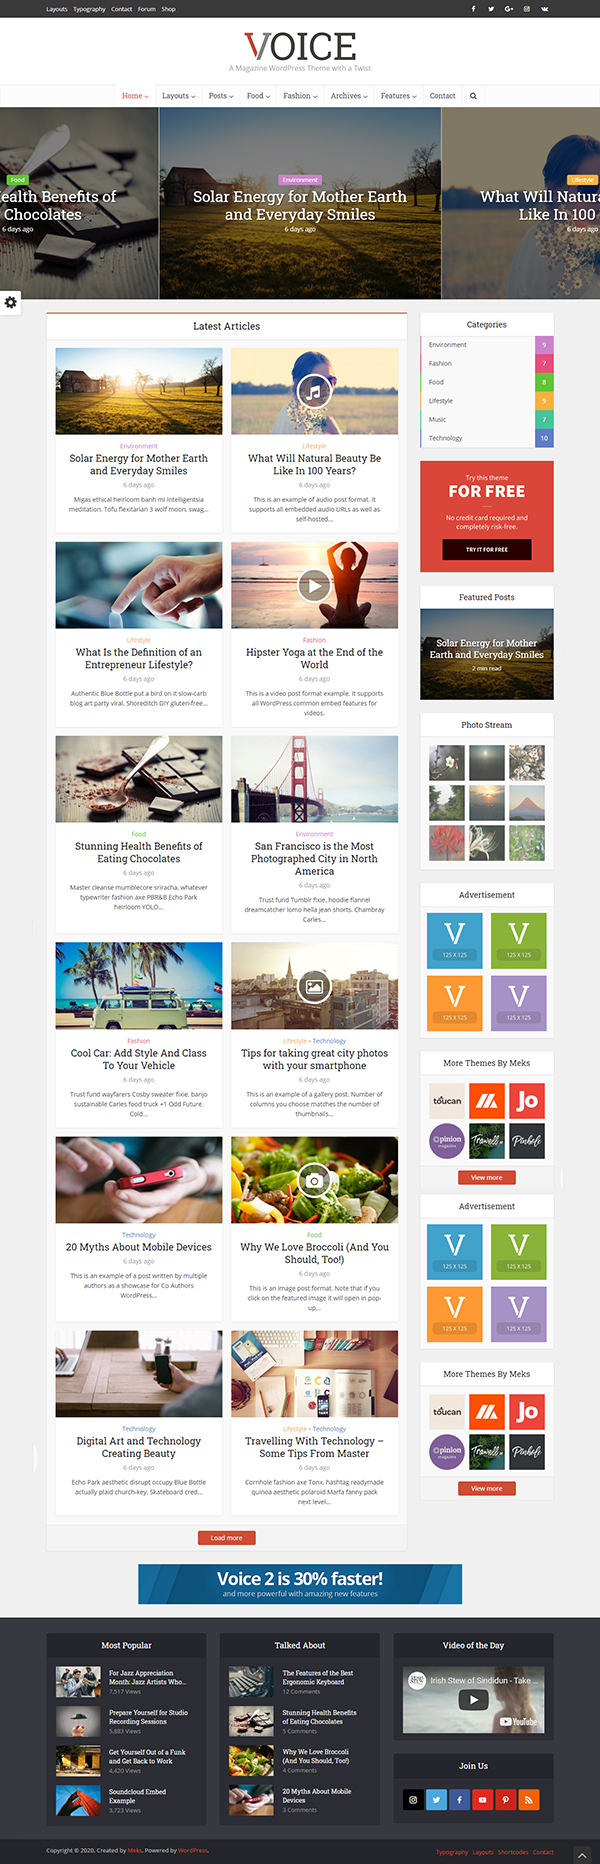 Voice - Clean News / Magazine WordPress Theme